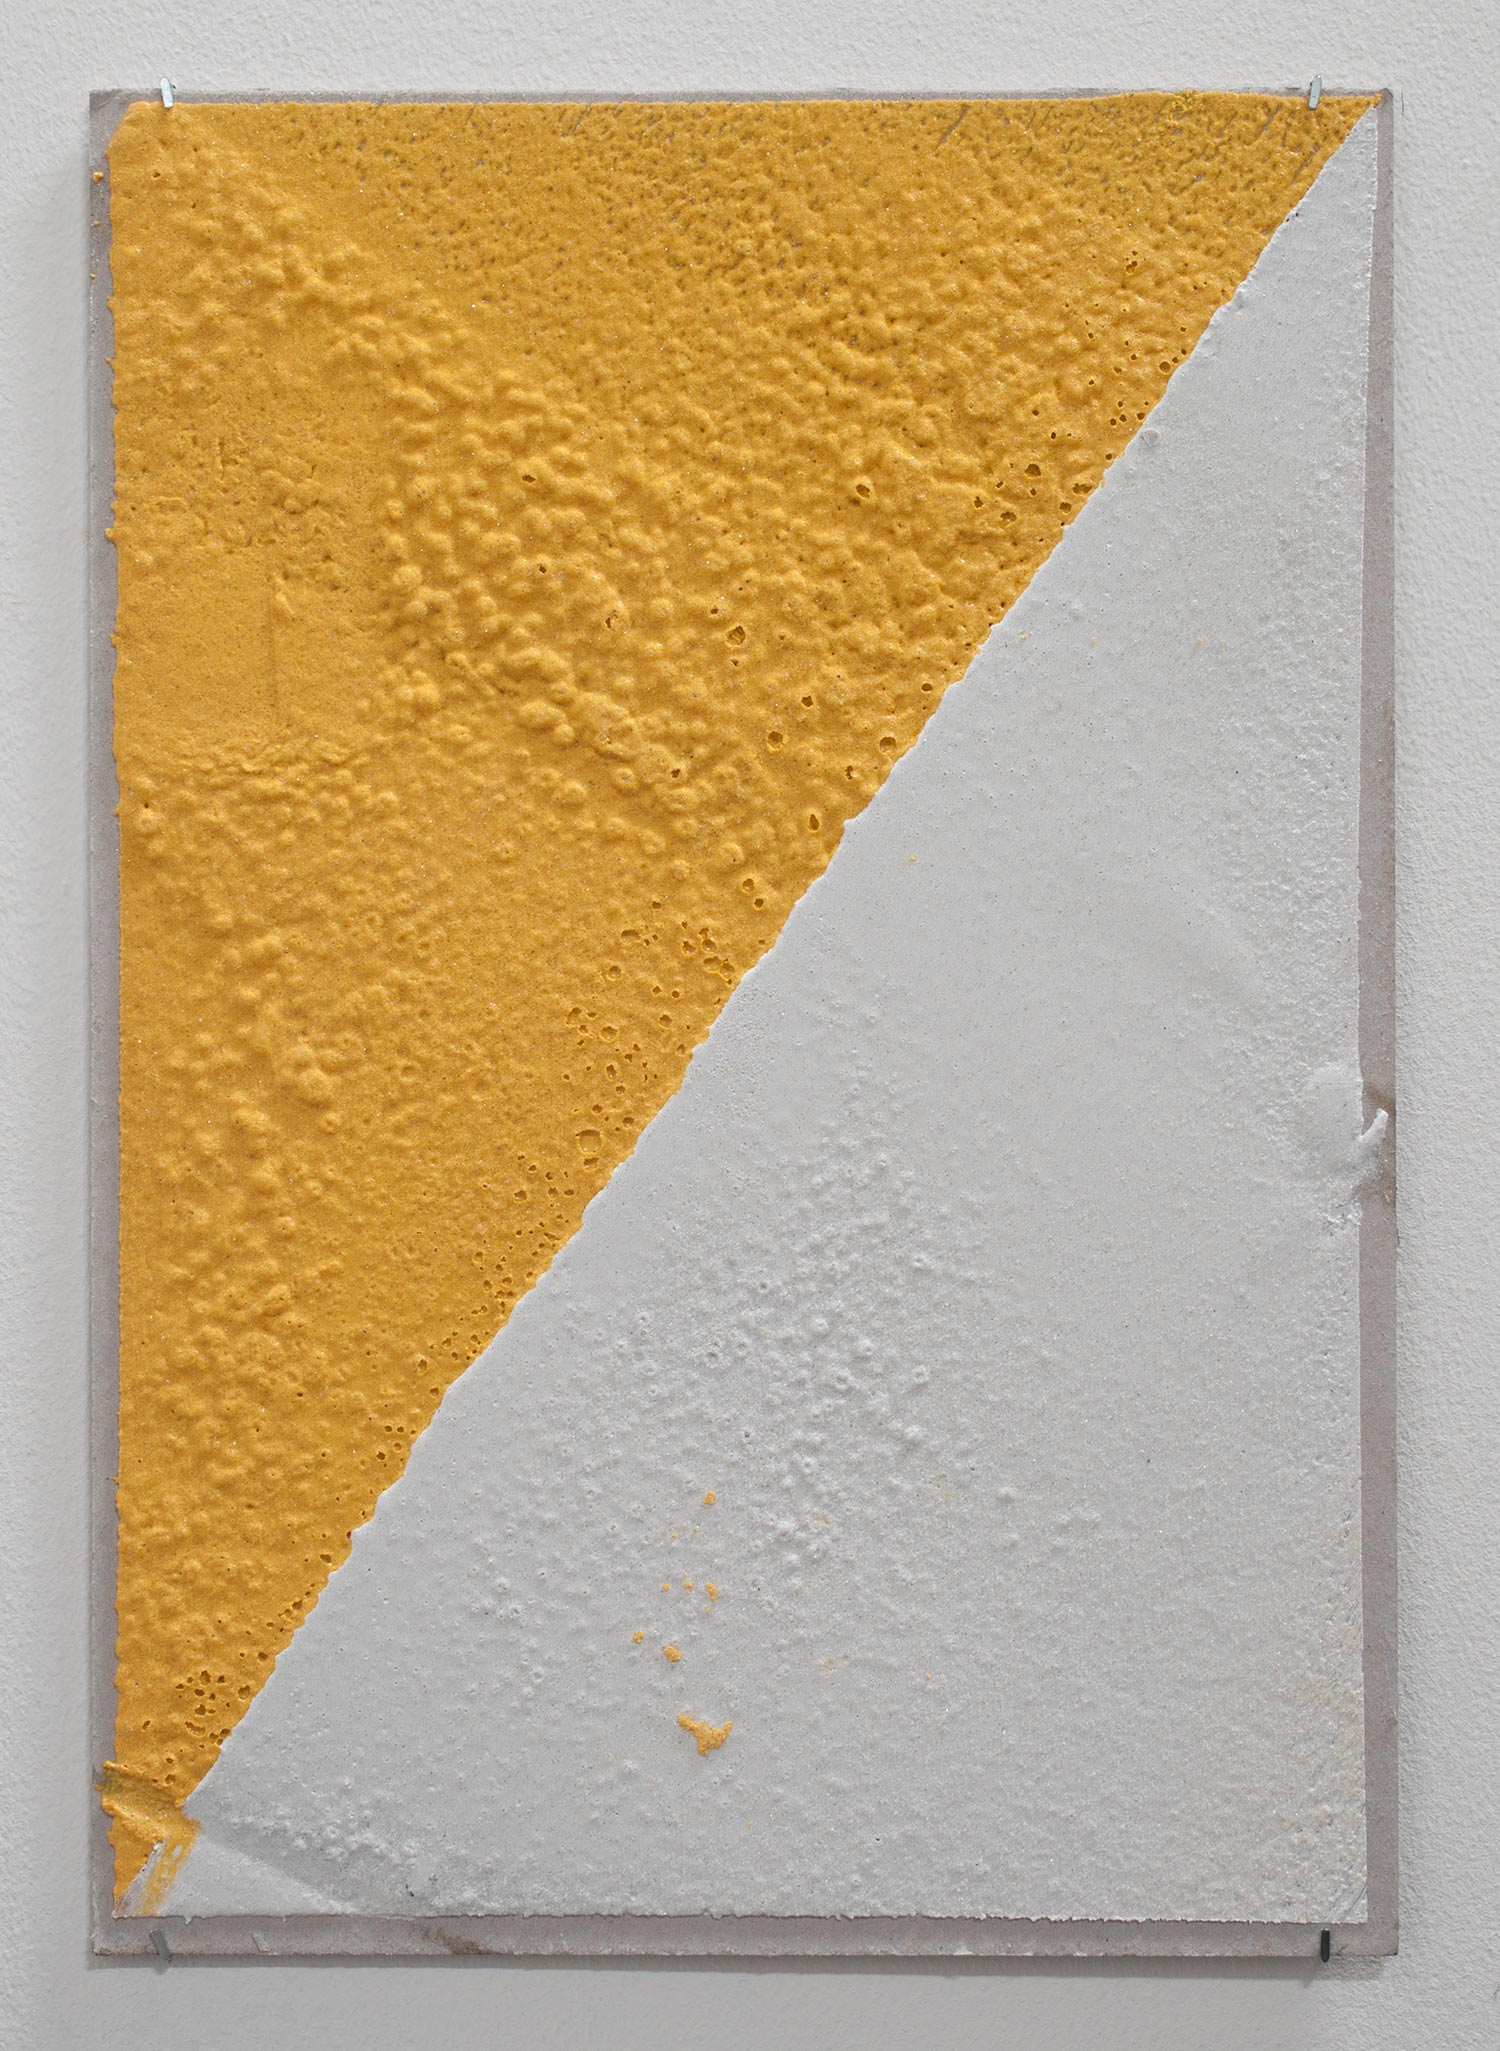 300 (W), 2 mm (T), Yellow, White, Random Mark, Hand Marking, Al Barsha South, Unnamed Street , 2017  Thermoplastic paint and reflective glass particles on grey board  35 x 50 cm